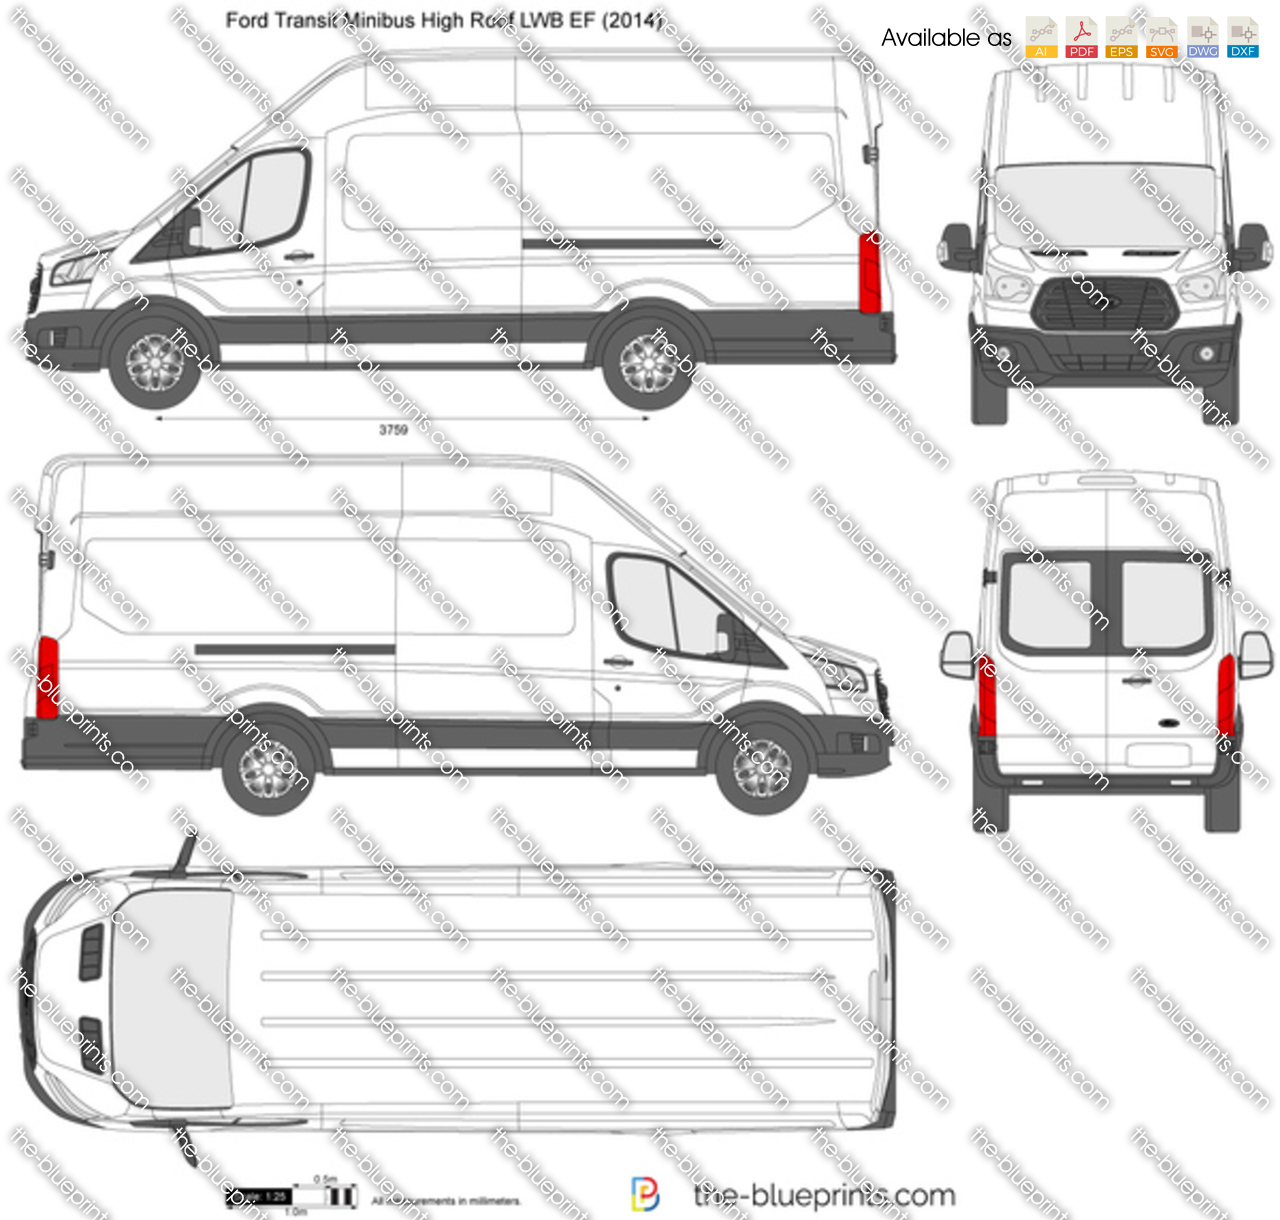 ford transit minibus high roof lwb ef vector drawing. Black Bedroom Furniture Sets. Home Design Ideas